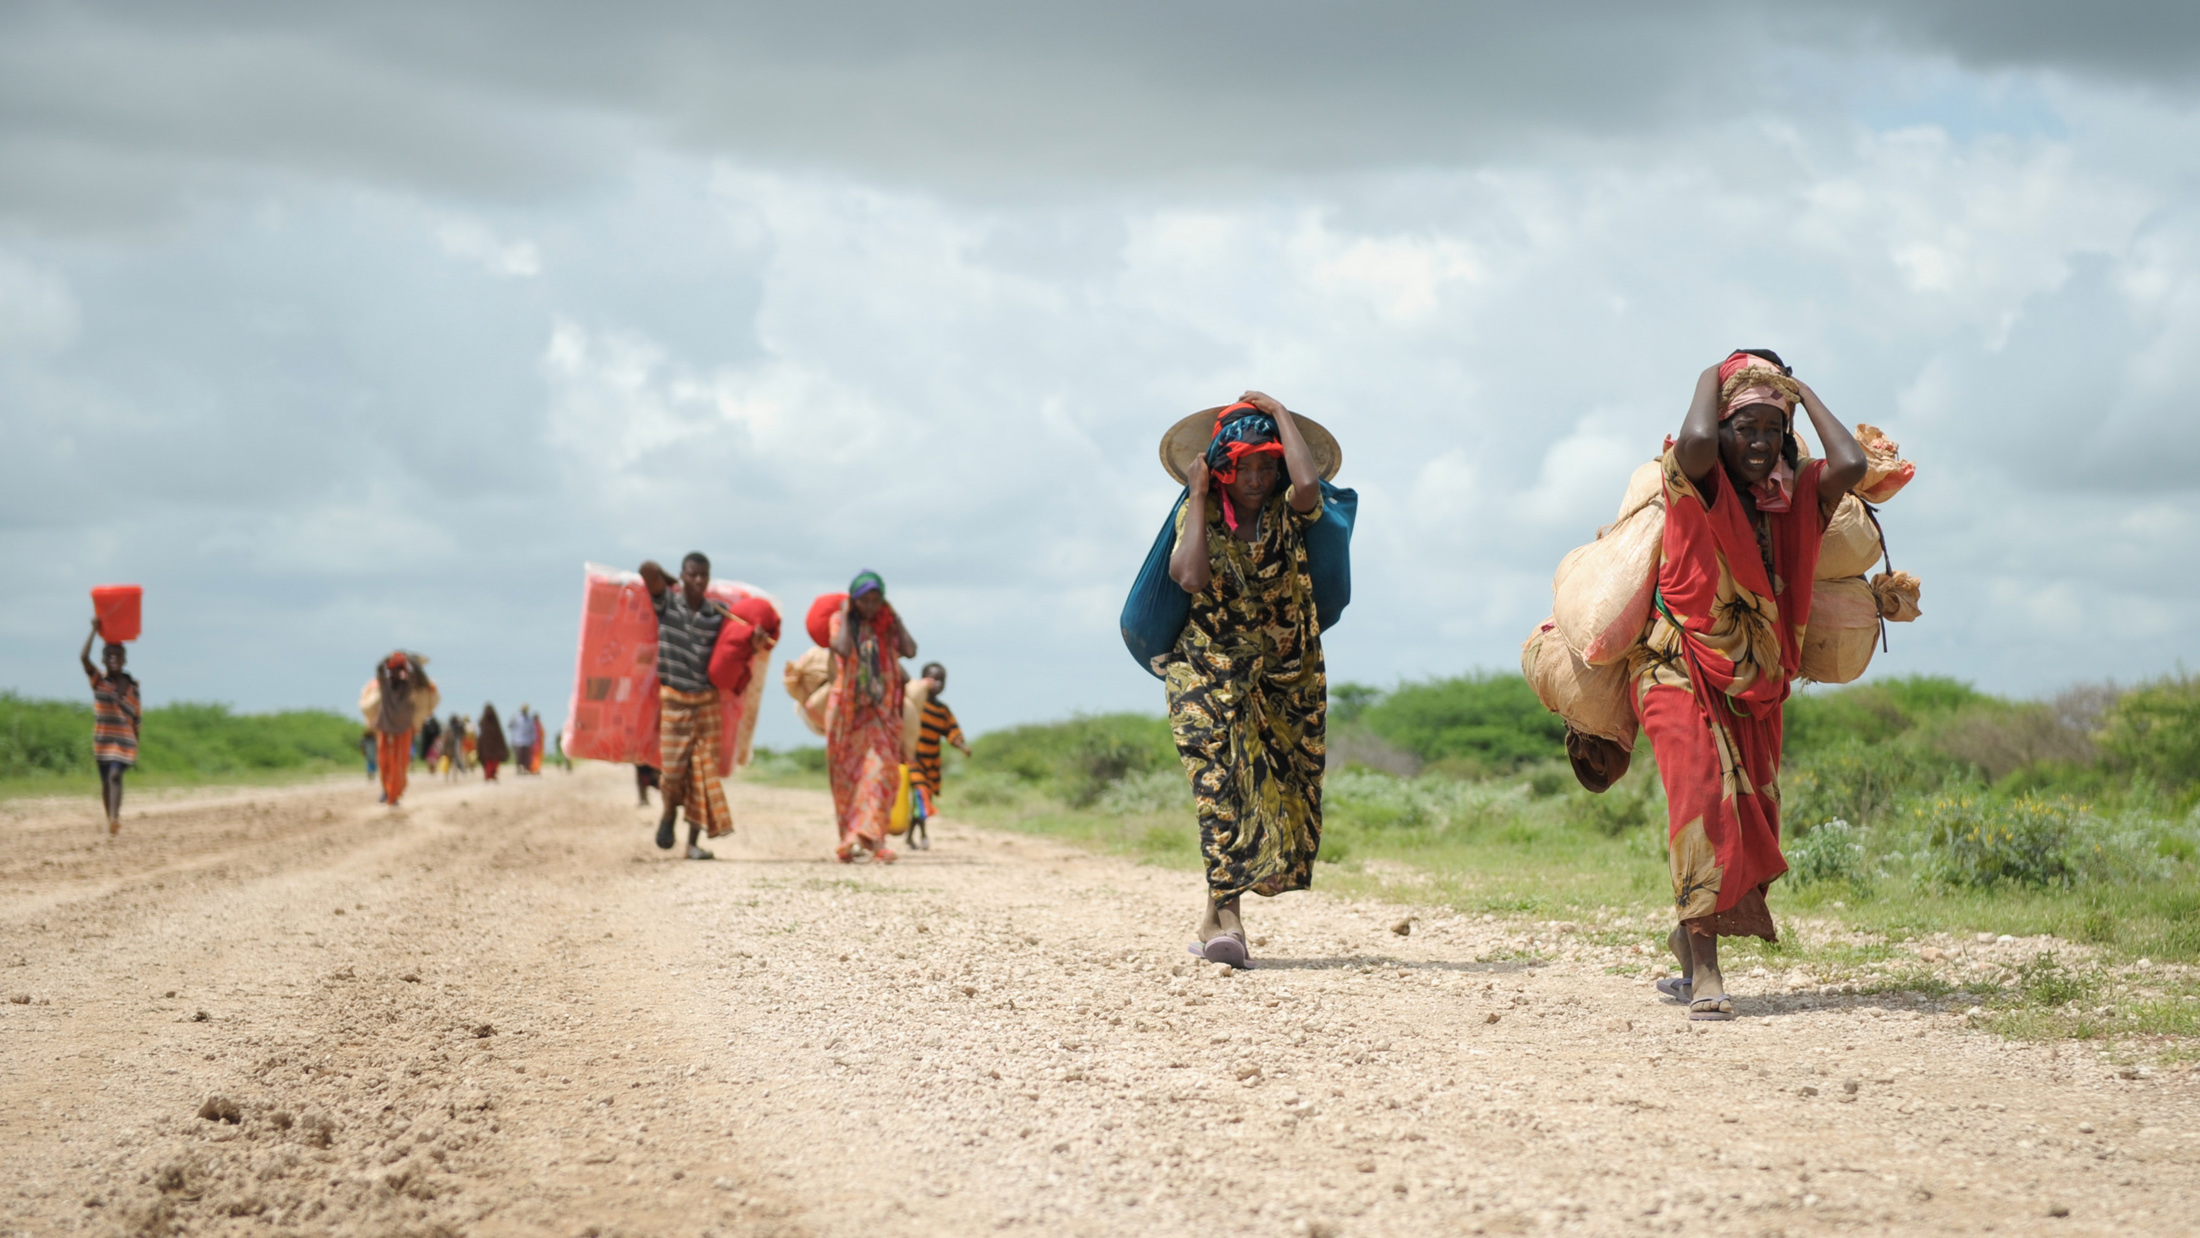 Carrying whatever possessions they can, women arrive in a steady trickle at a camp for Internally Displaced People (IDPs) established next to a base of the African Union Mission for Somalia (AMISOM) near Jowhar.